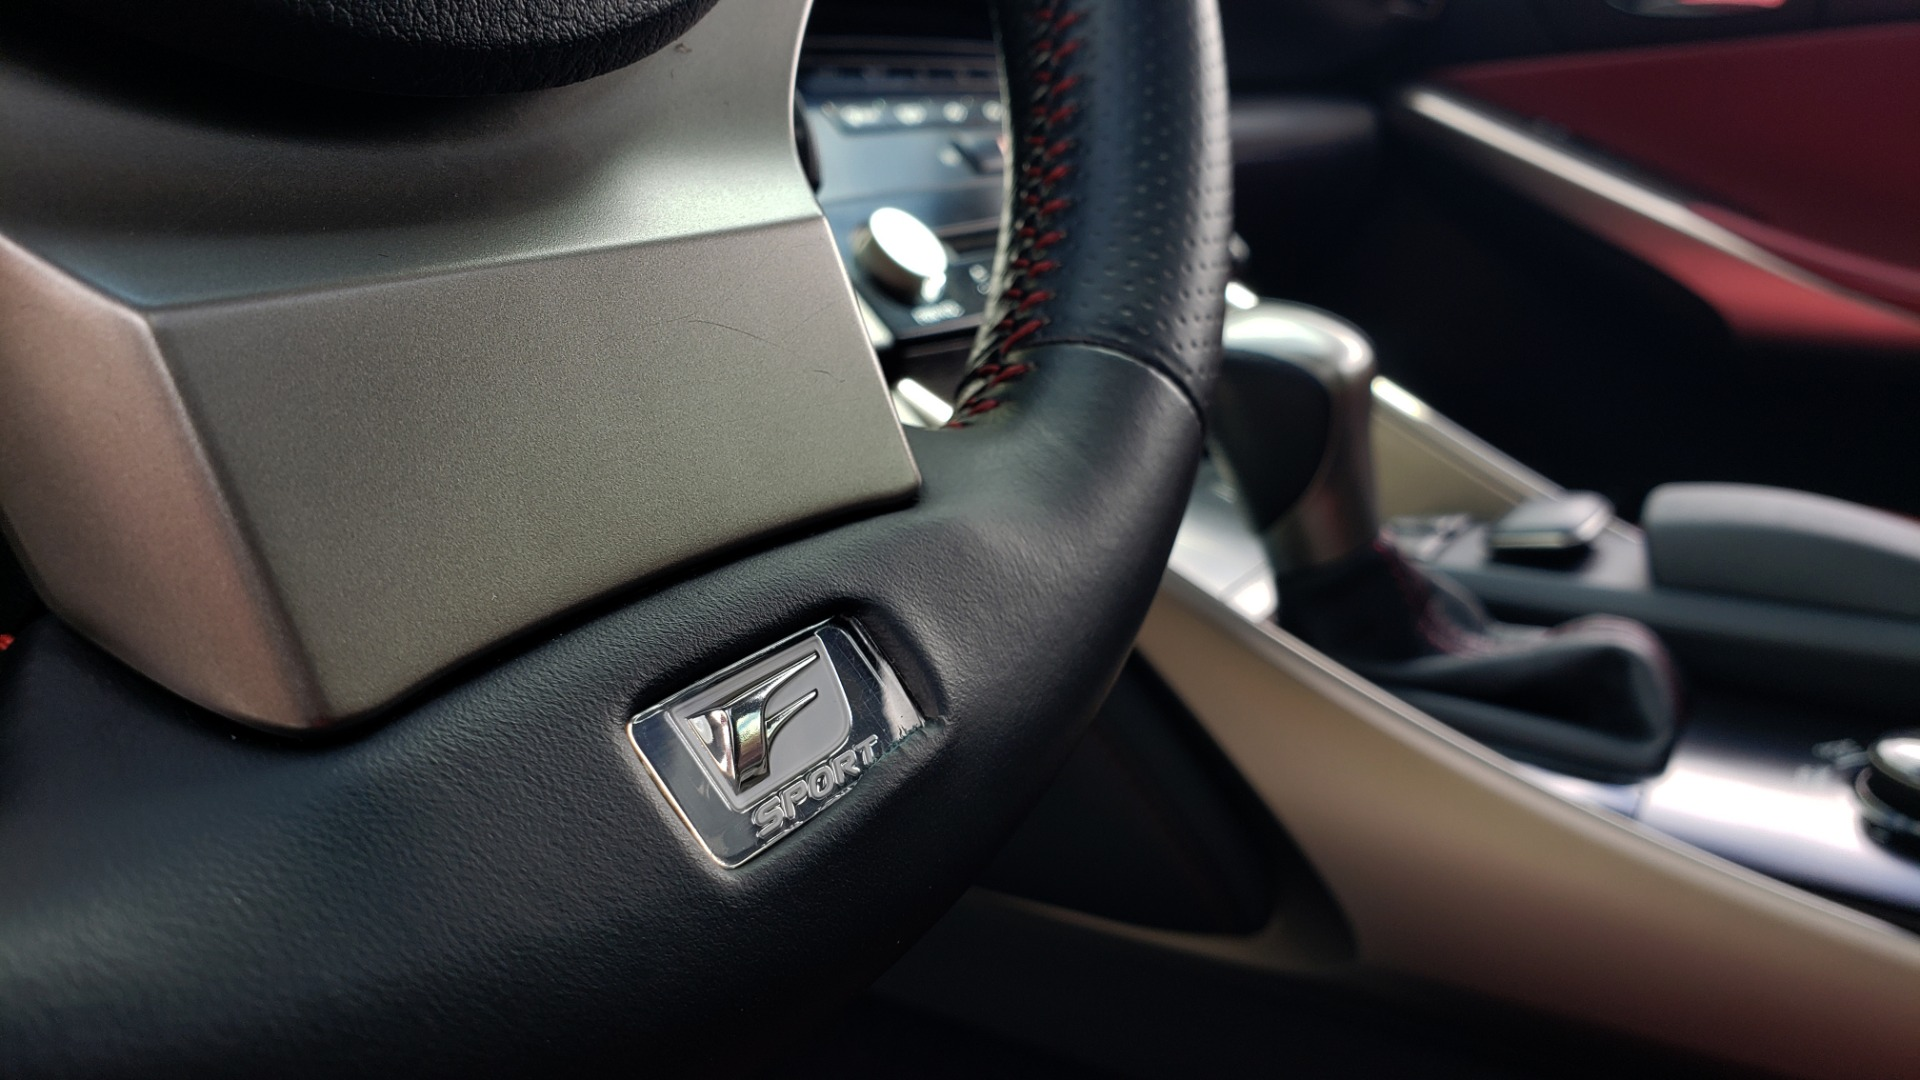 Used 2014 Lexus IS 350 F-SPORT / NAV / SUNROOF / REARVIEW / BSM / MARK LEV SND for sale Sold at Formula Imports in Charlotte NC 28227 35